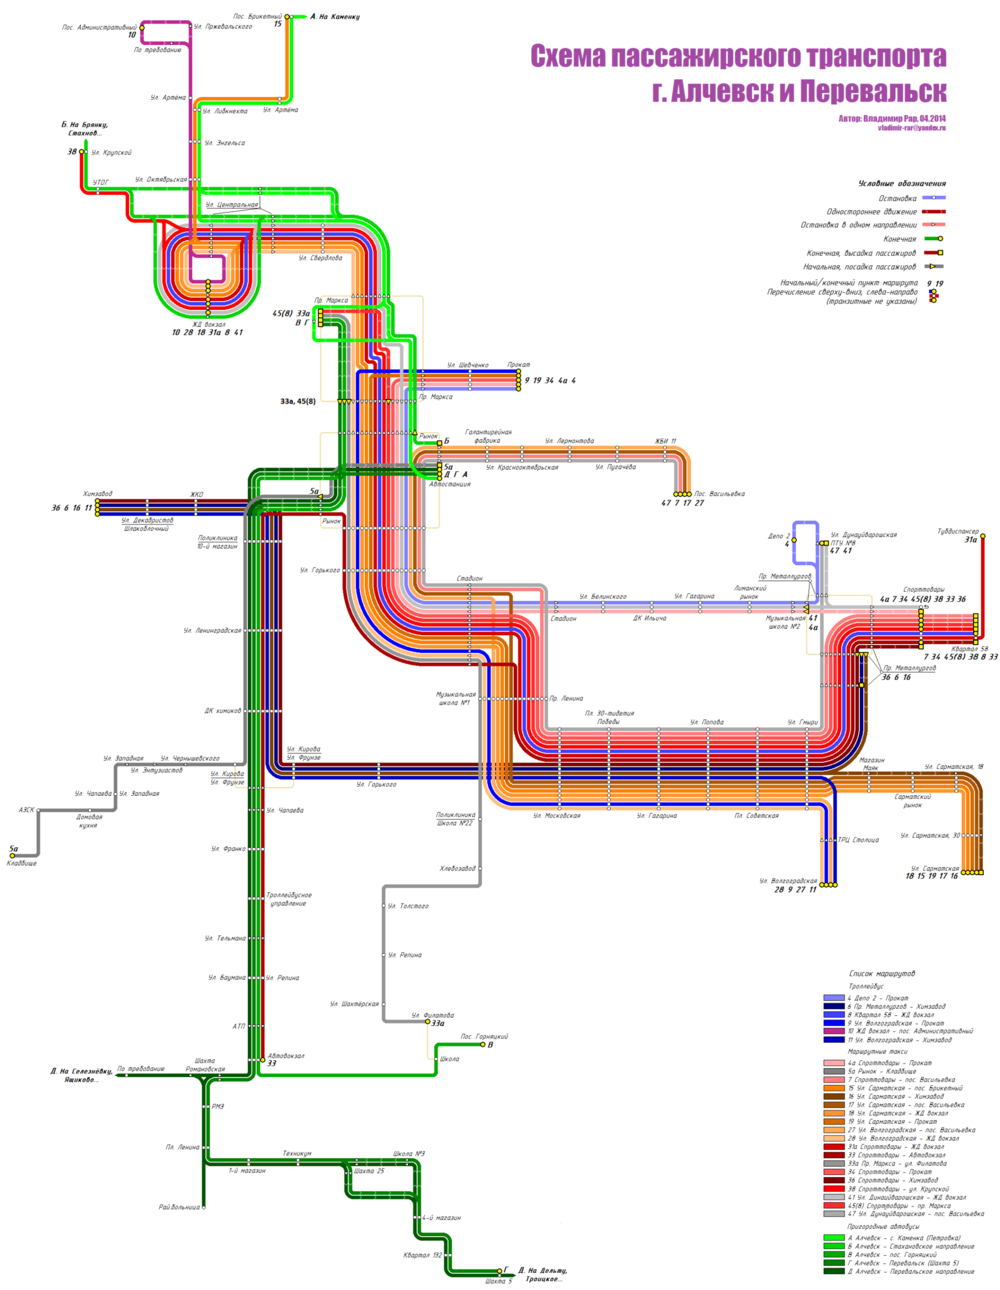 Map of transports routes in Alchevsk, Ukraine 04 2014.png